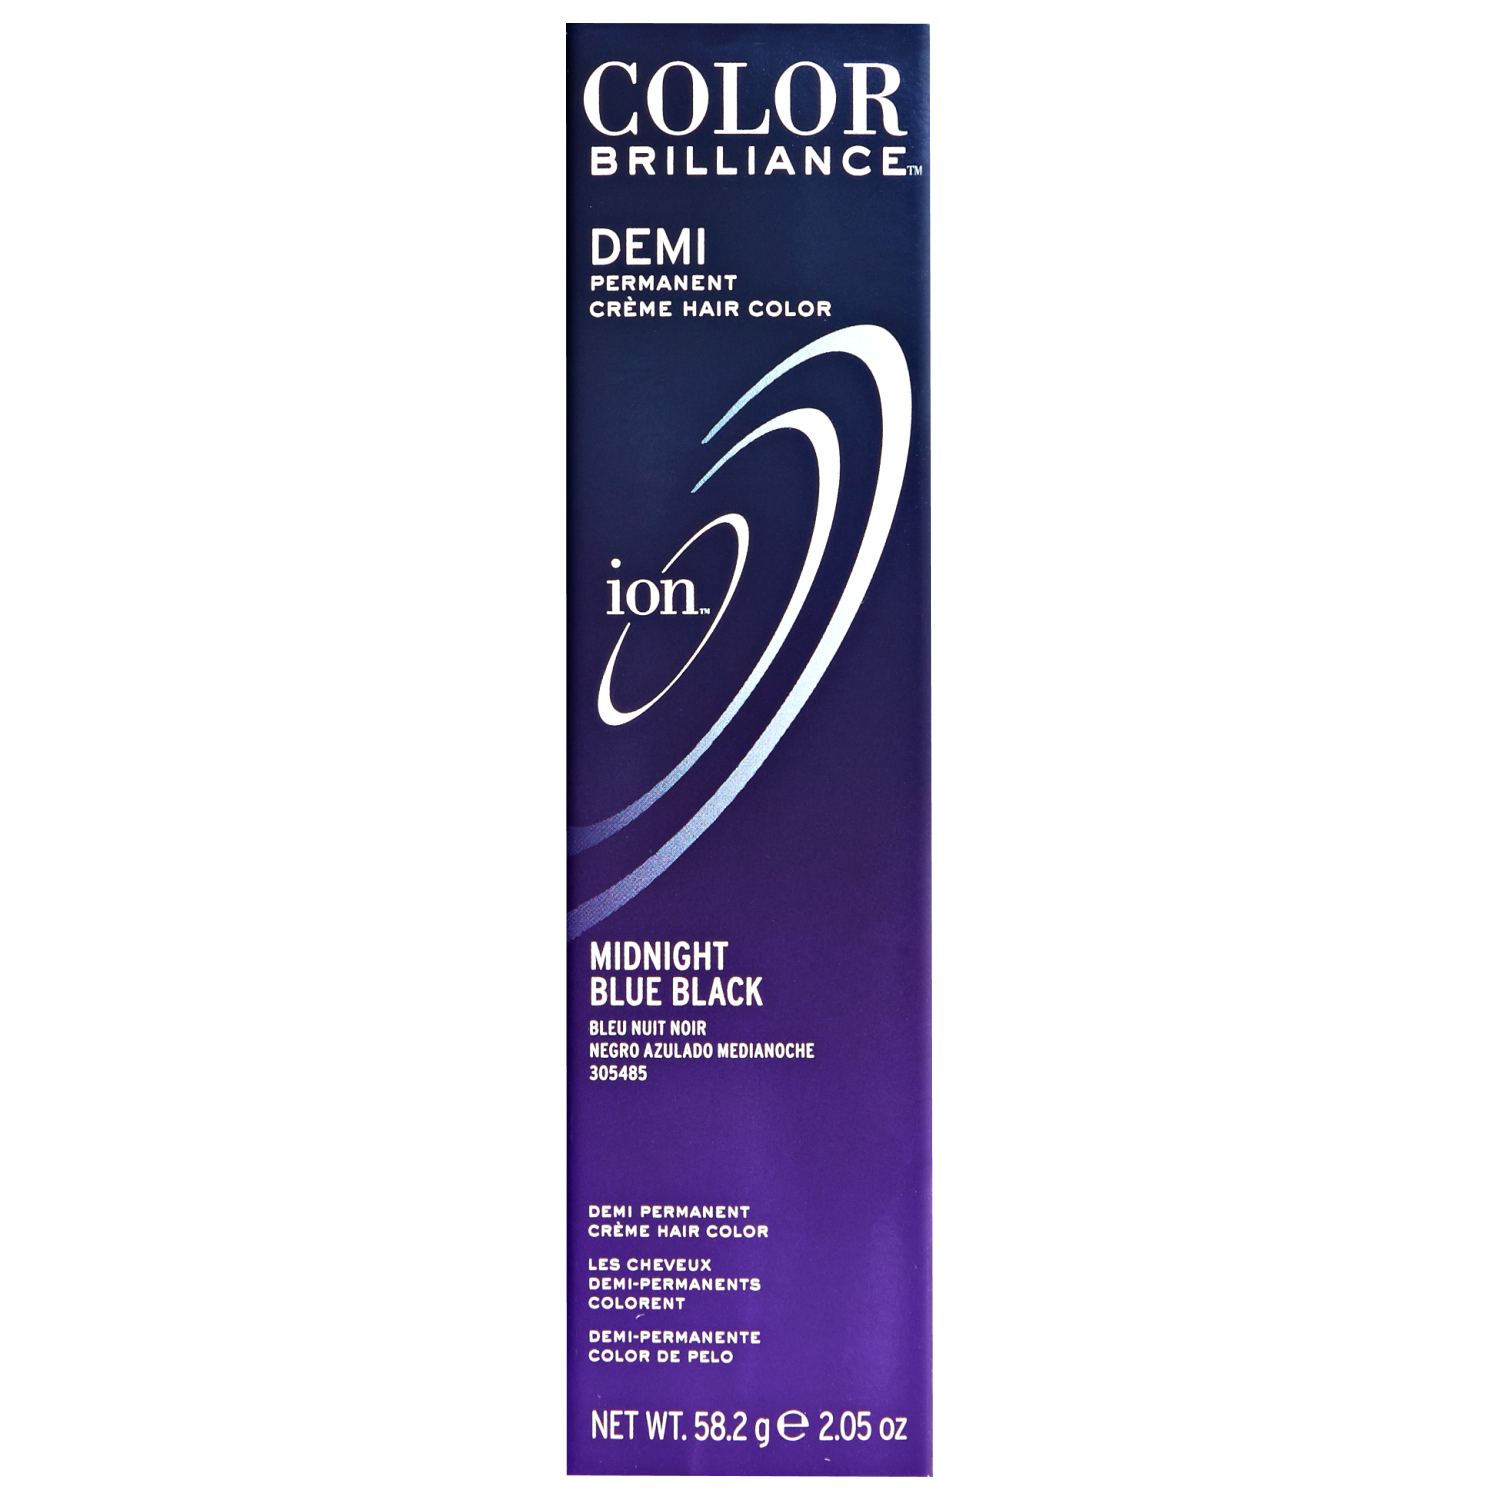 Ion Color Brilliance Master Colorist Series Demi Permanent Creme Hair Color Midnight Blue Black